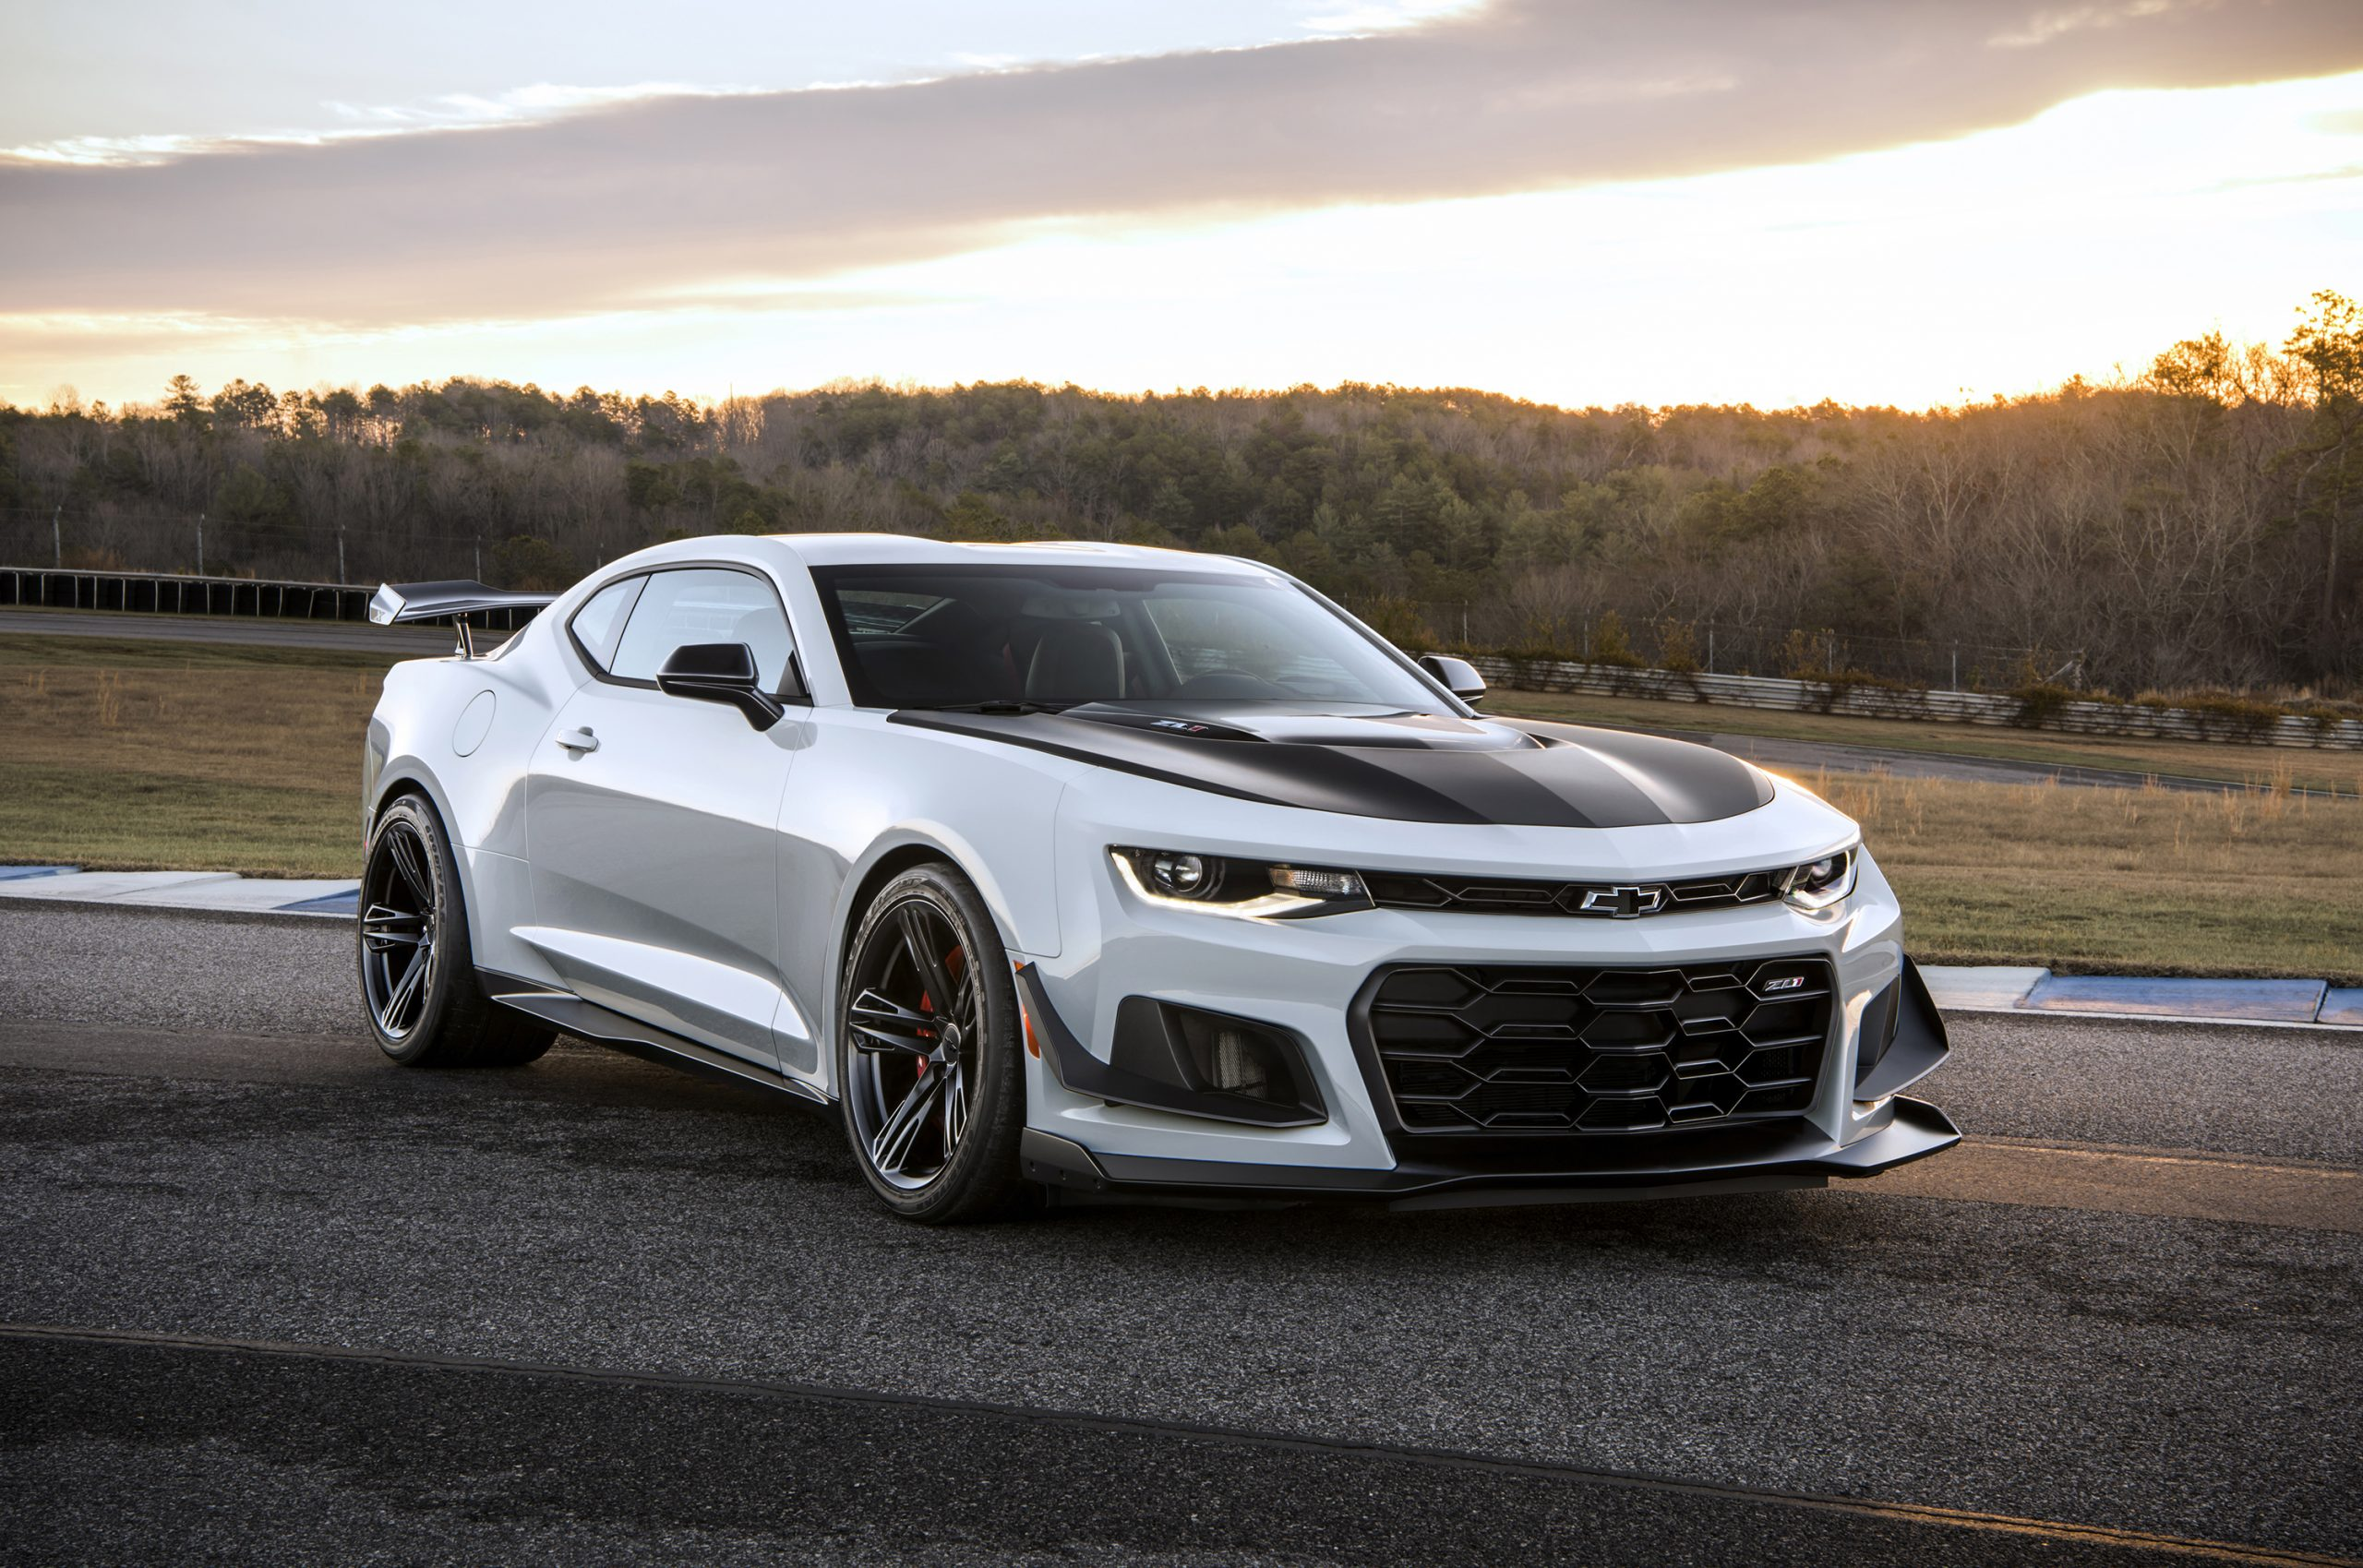 The 2019 Camaro ZL1 1LE now offers a 10-speed automatic